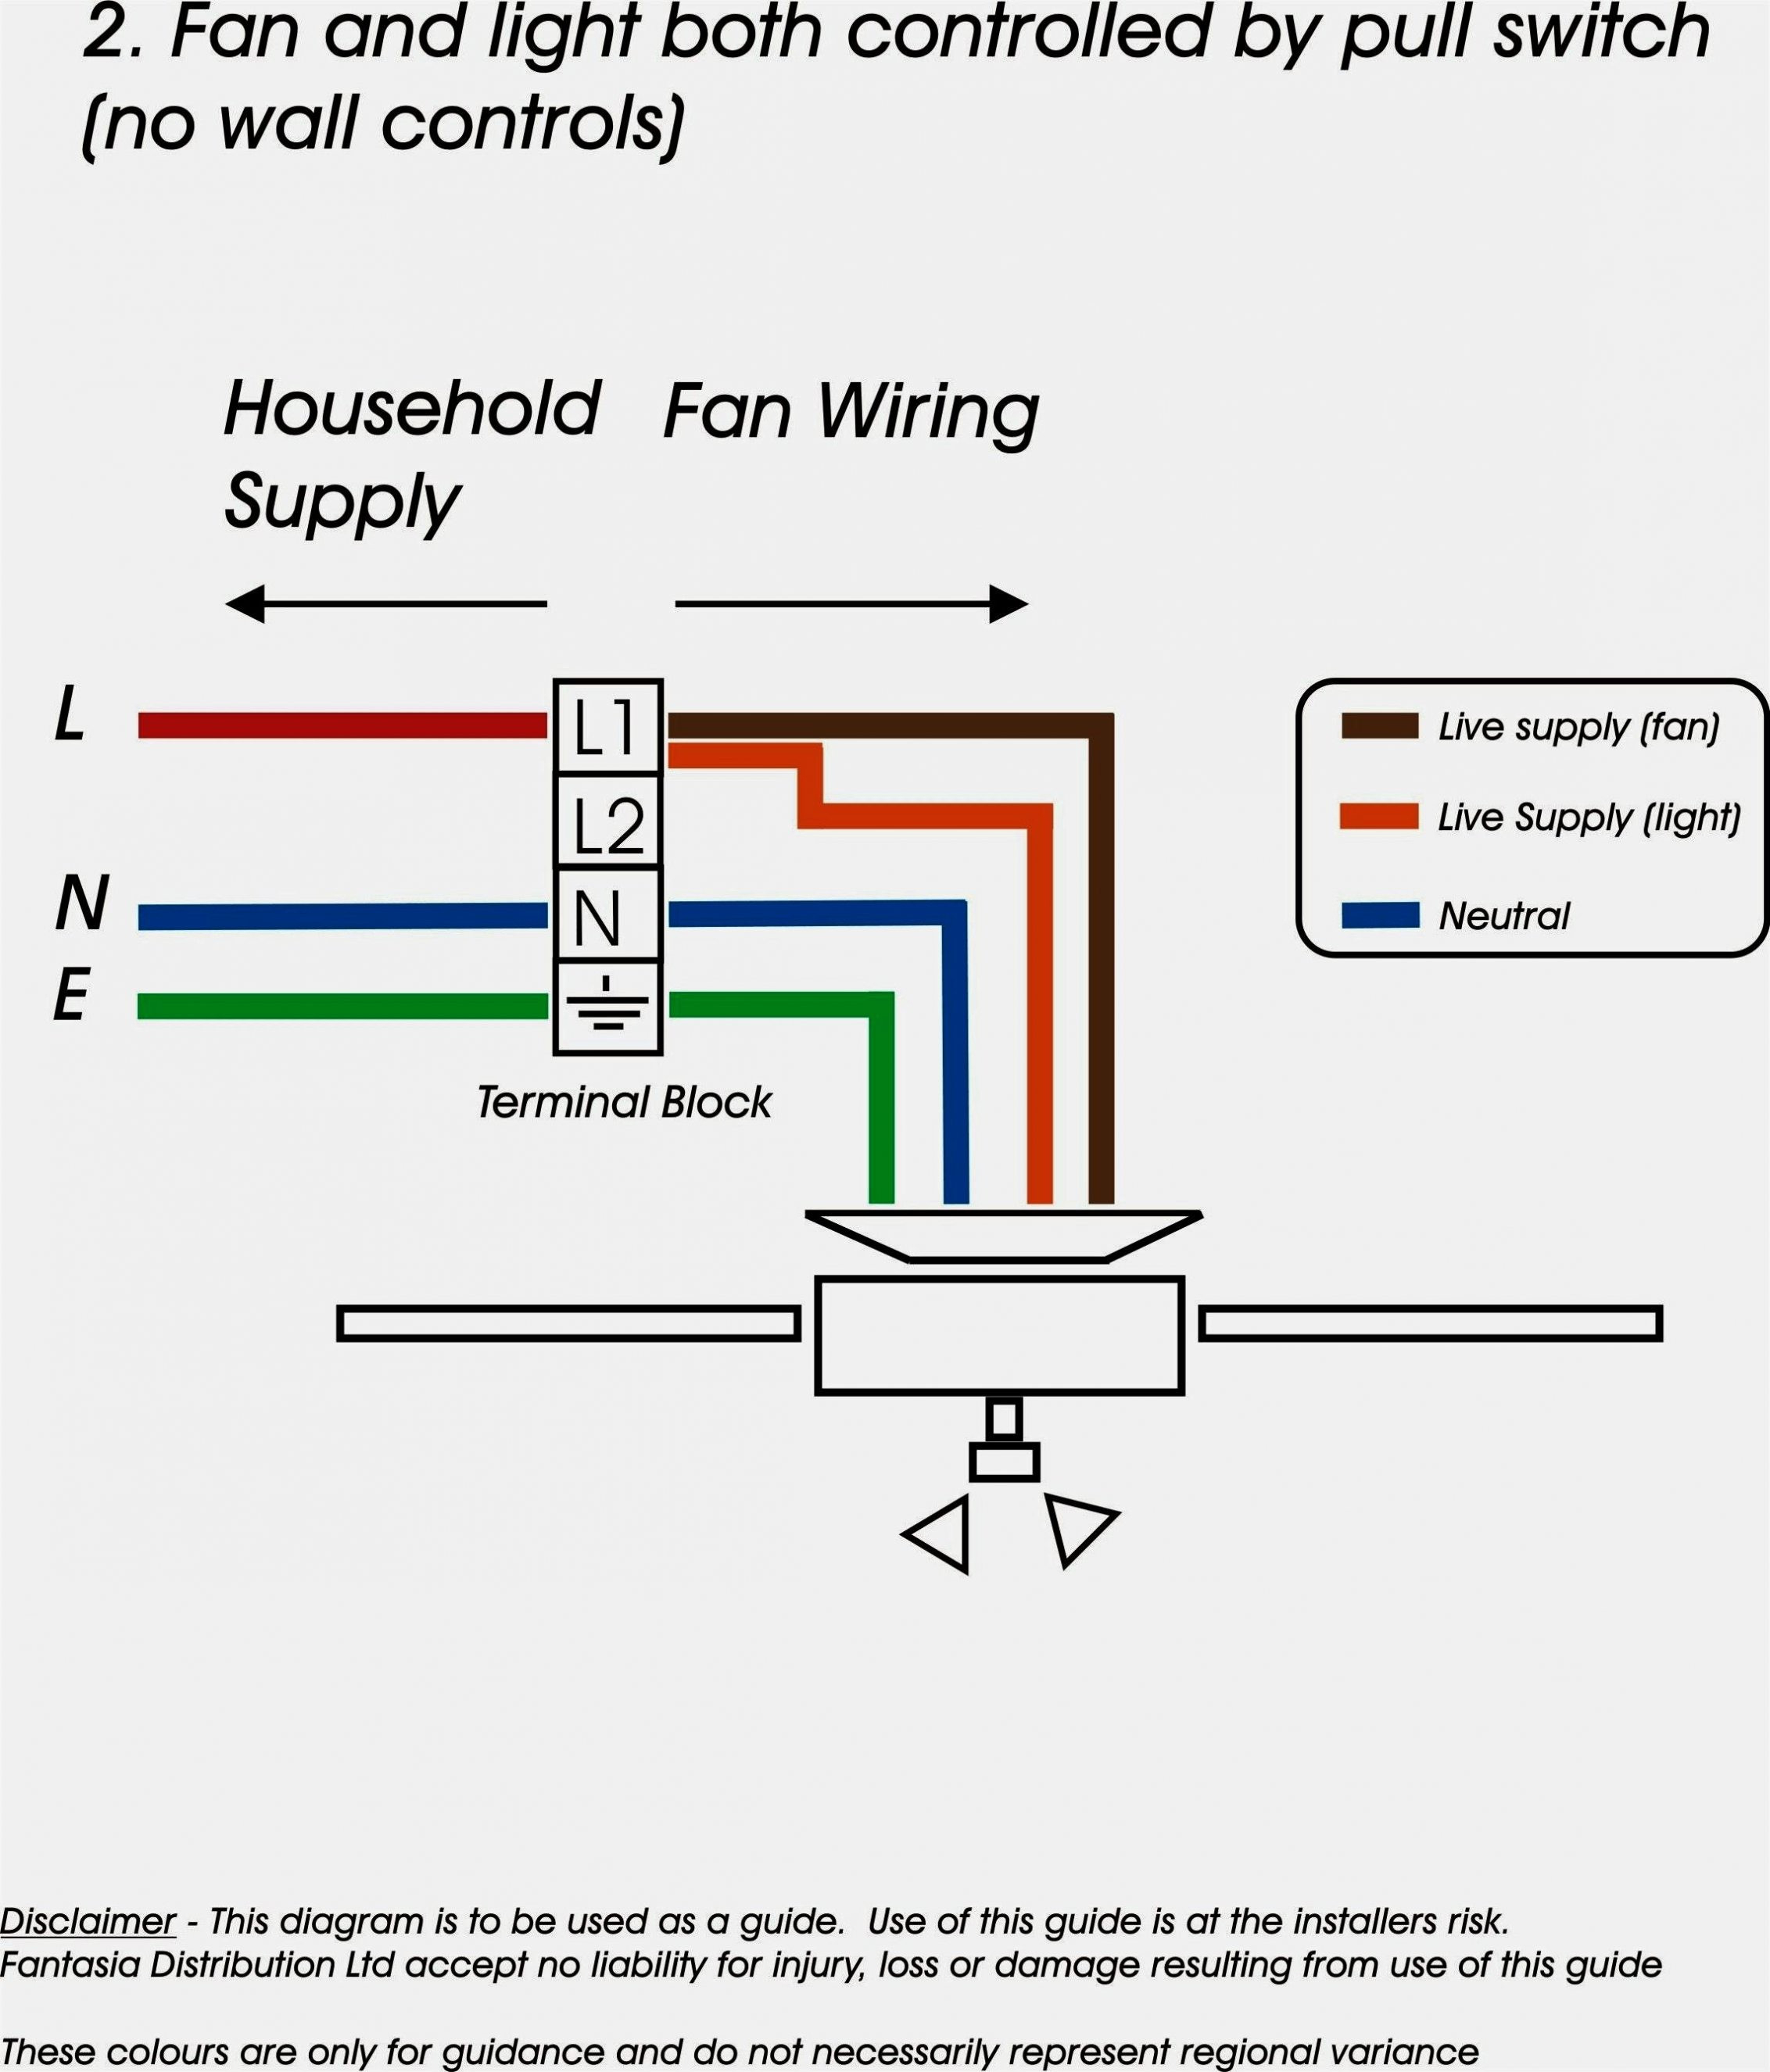 ceiling fan wiring diagram 3 speed Download-ceiling fan wiring diagram 3 speed Collection Ceiling Fan Pull Chain Switch Wiring Diagram Best 20-c